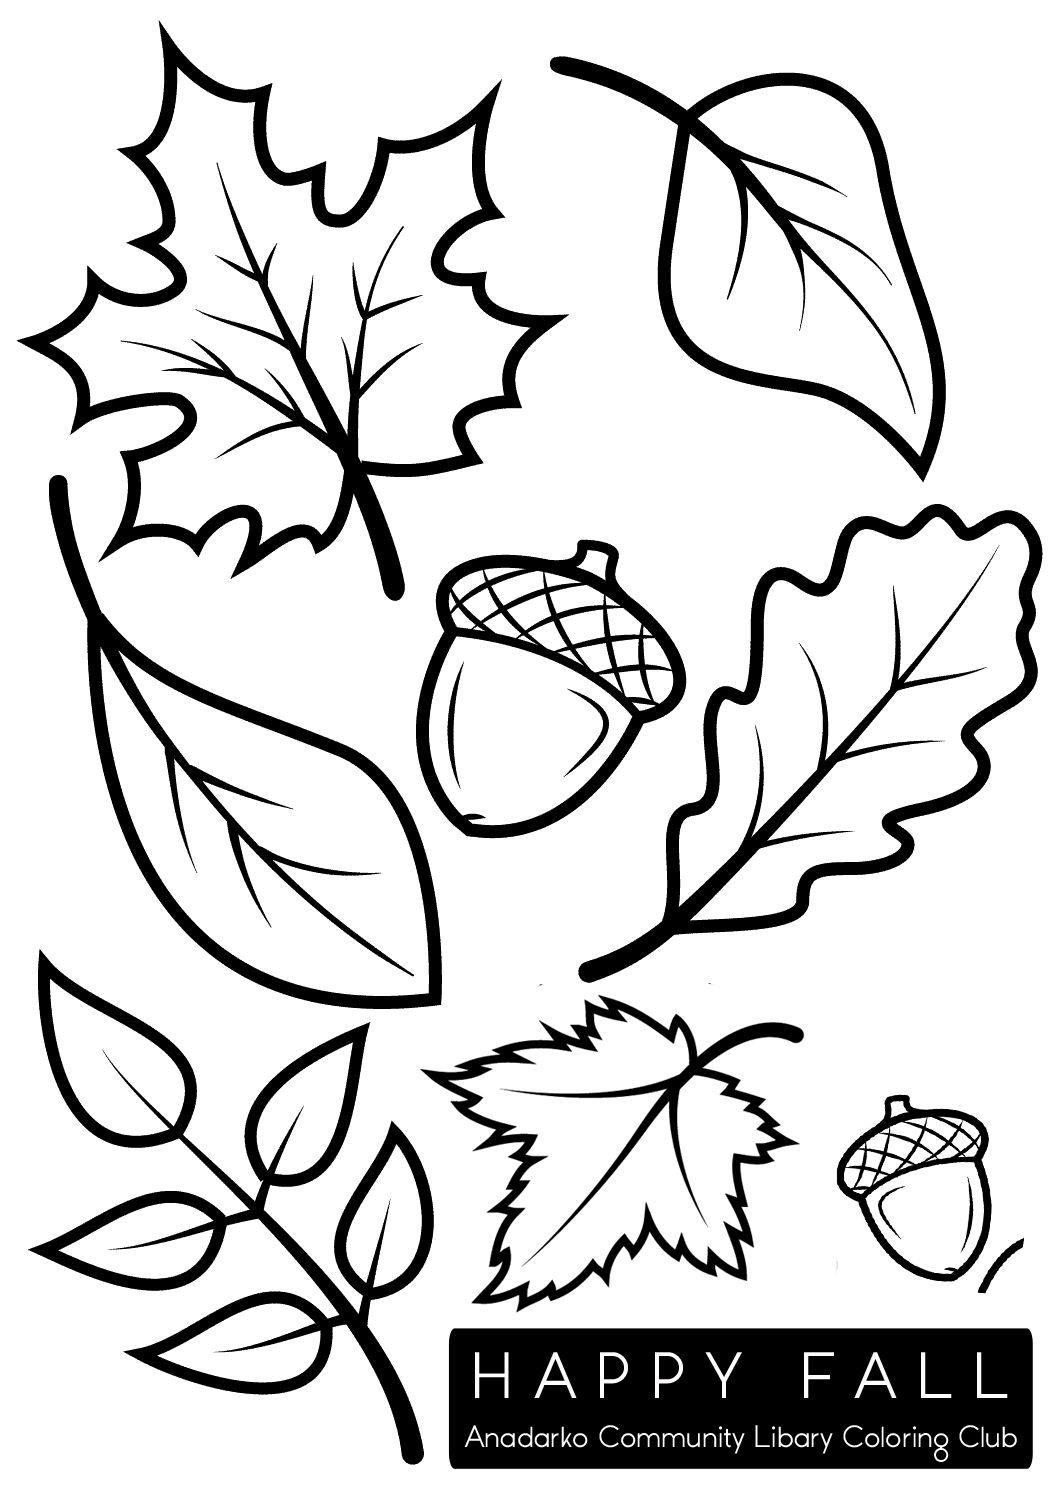 Coloring Pages : Autumn Coloring Pagesable Free Fall Leaves For Kids.